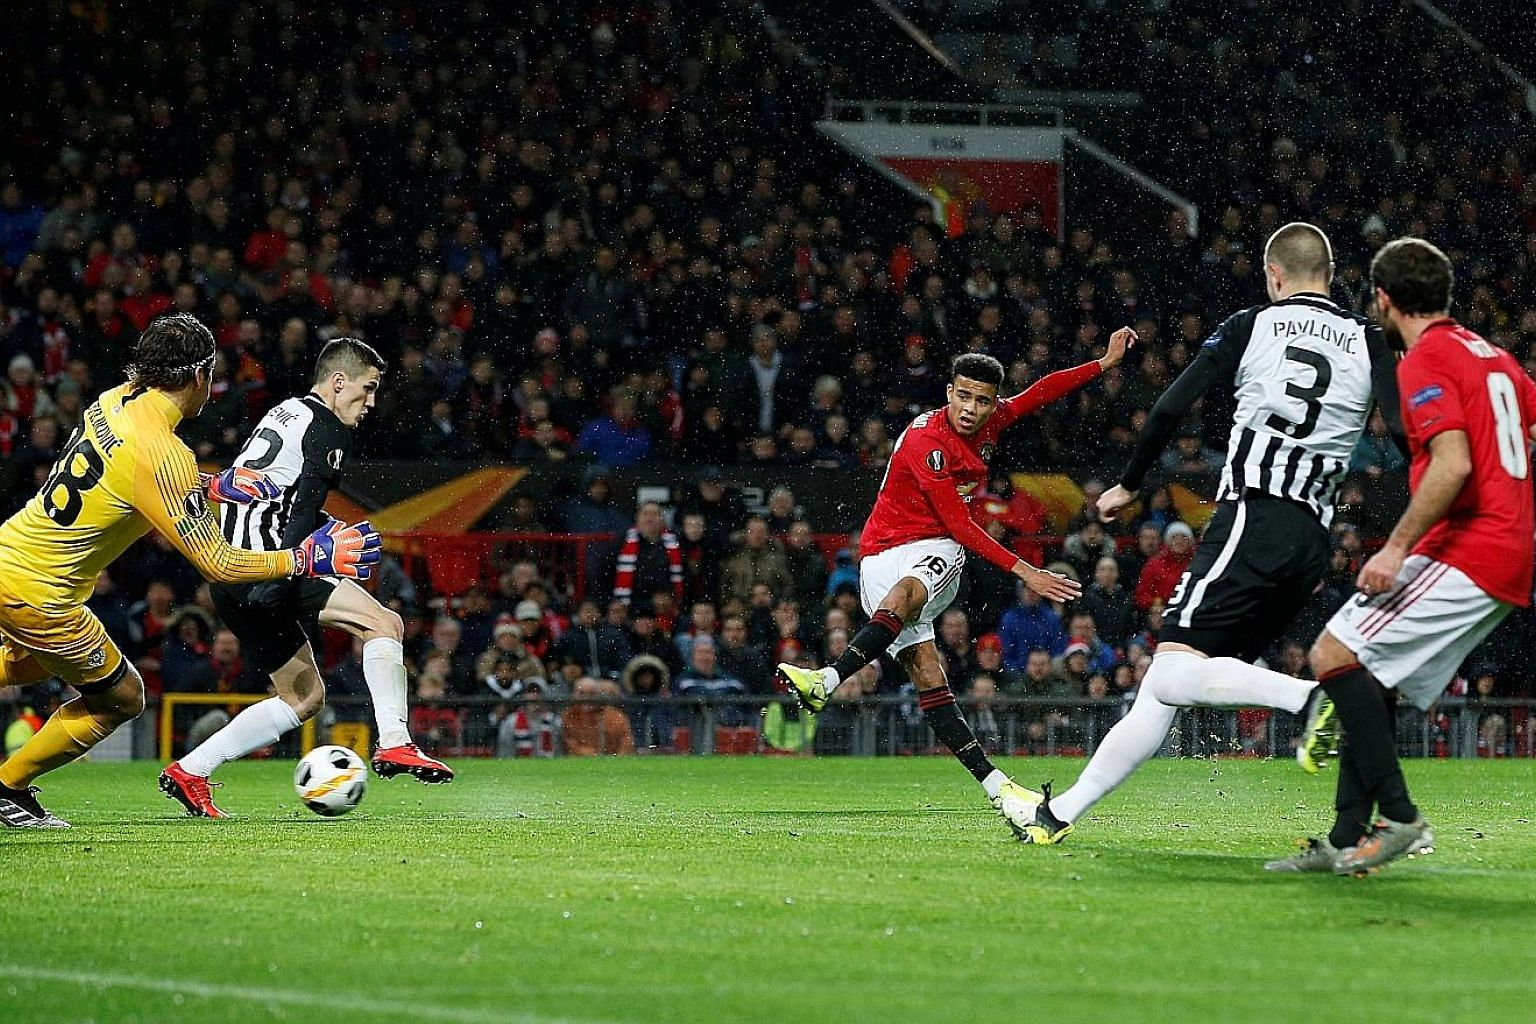 Manchester United's 18-year-old striker Mason Greenwood scoring the first goal of the night in the 3-0 Europa League win over Partizan Belgrade. The victory ensured that United have made it through to the knockout stage of the competition.